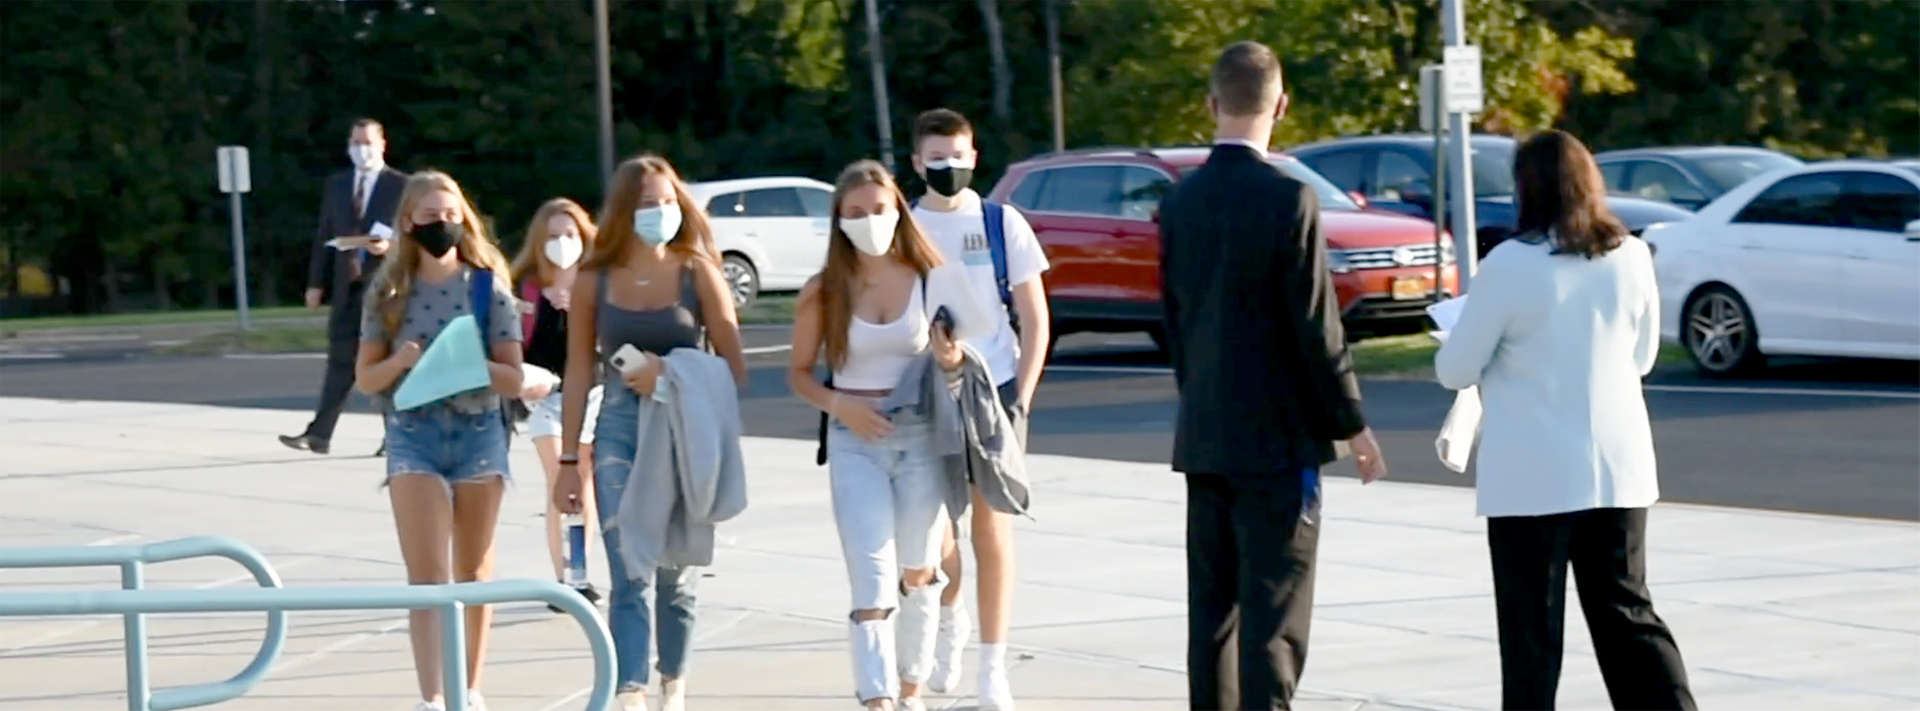 Several girls with masks walking past 2 adults